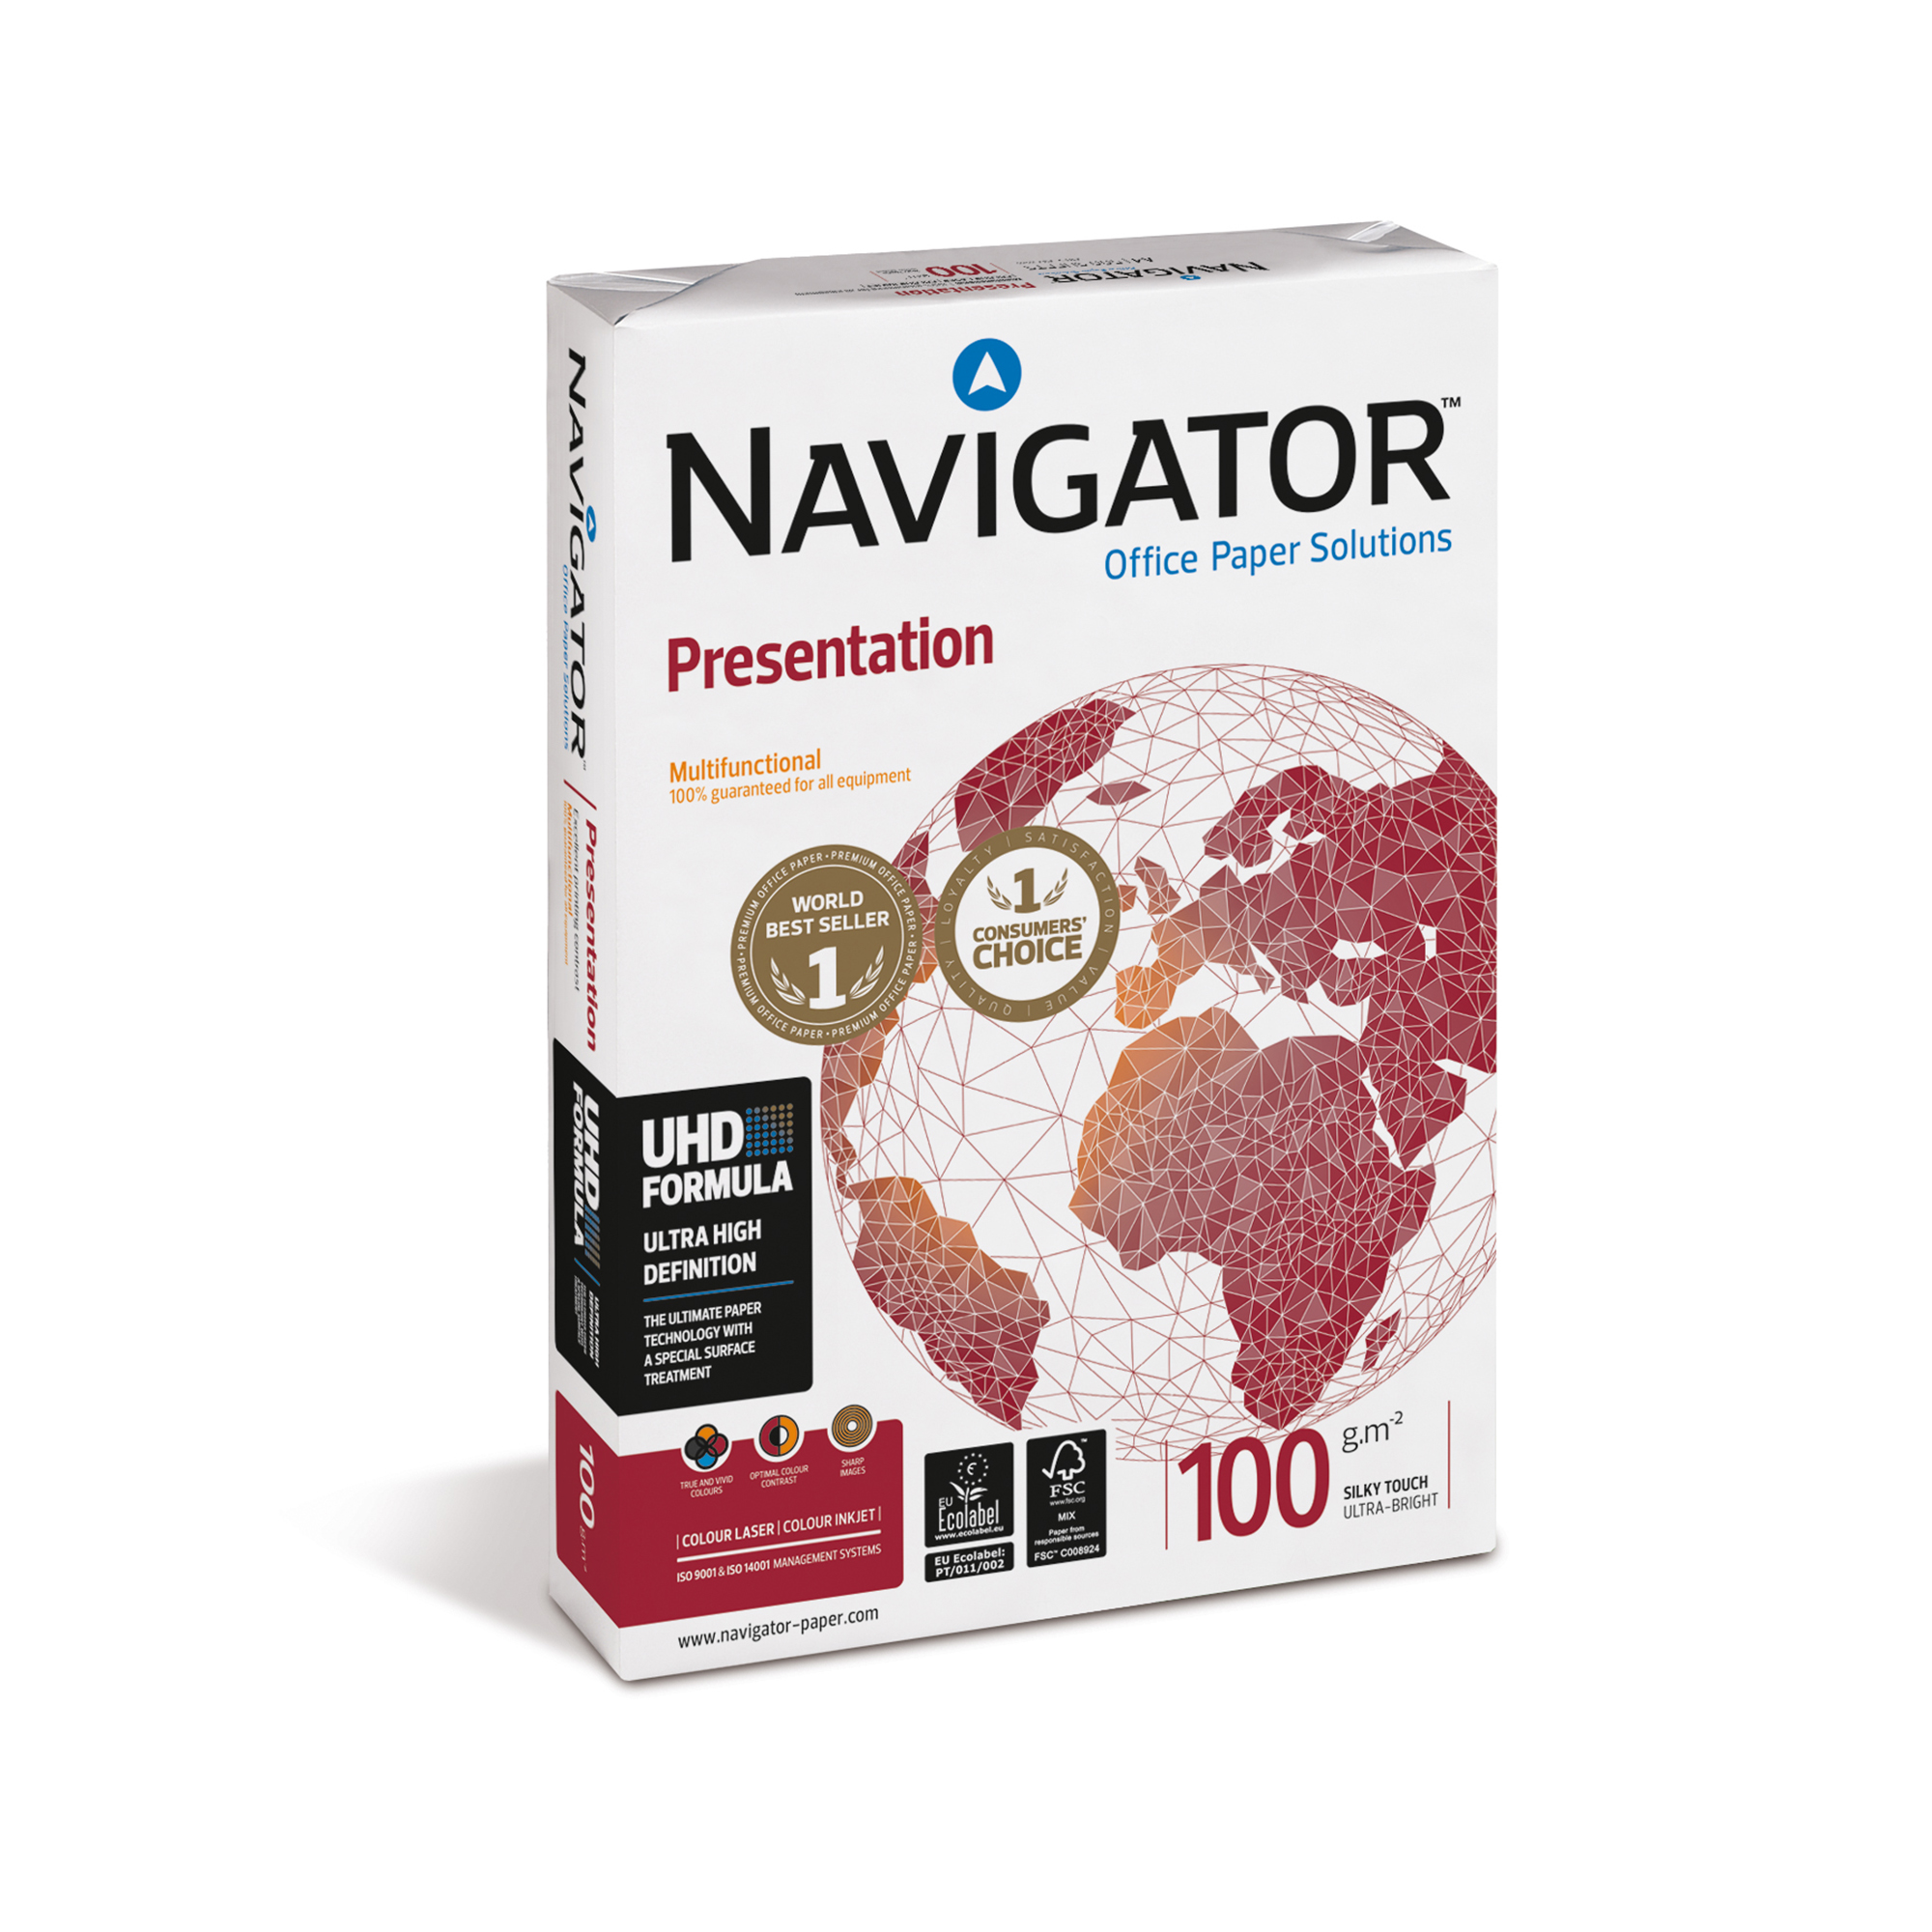 Navigator Presentation Paper Ream-Wrapped 100gsm A4 Wht Ref NPR1000032 [500 Shts][REDEMPTION] Apr-June 20